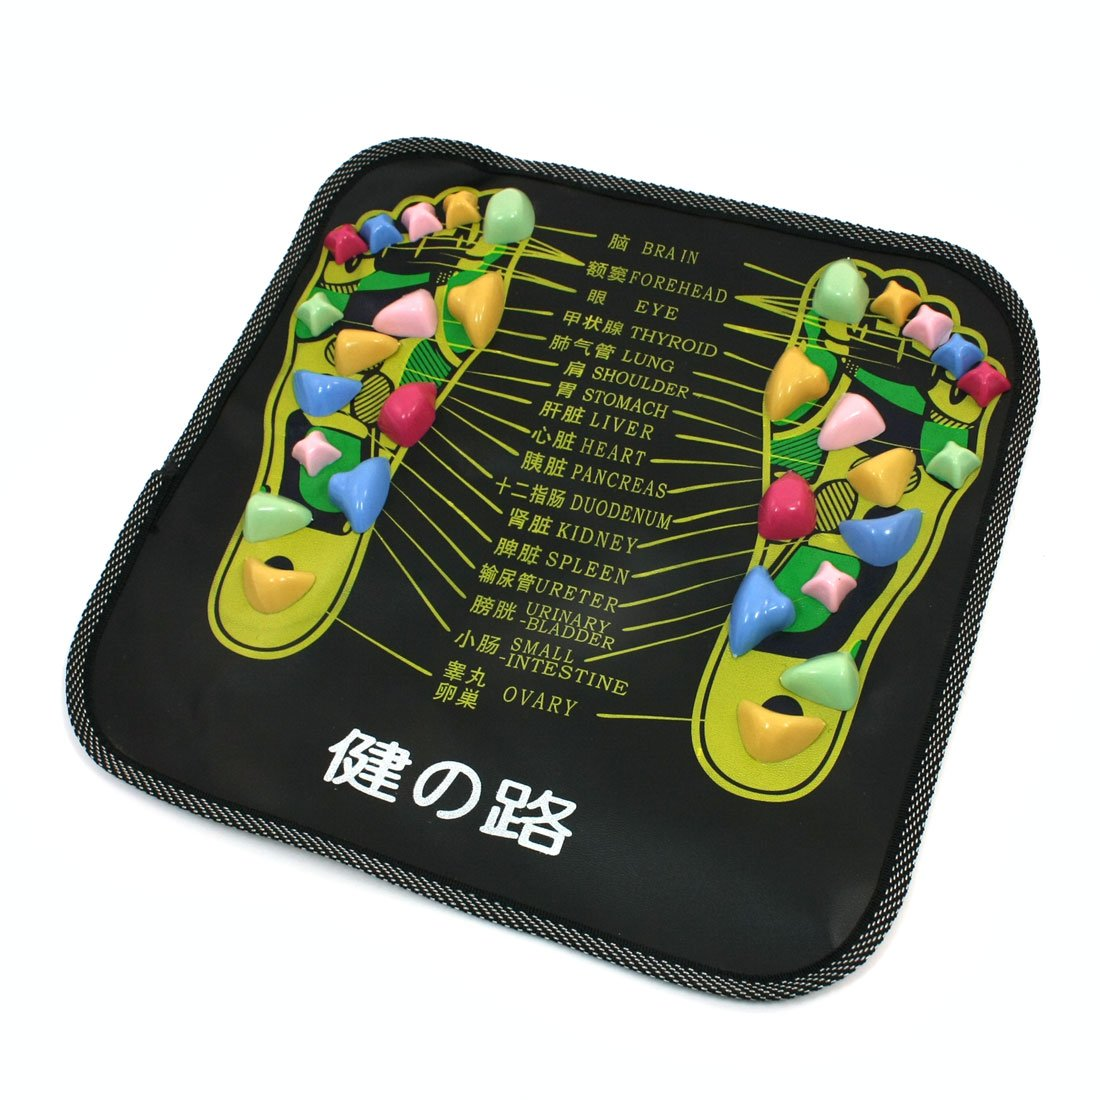 YOST Chinese Health Care Colored Plastic Walk Stone Square Healthy Foot Massage Mat Pad Cushion